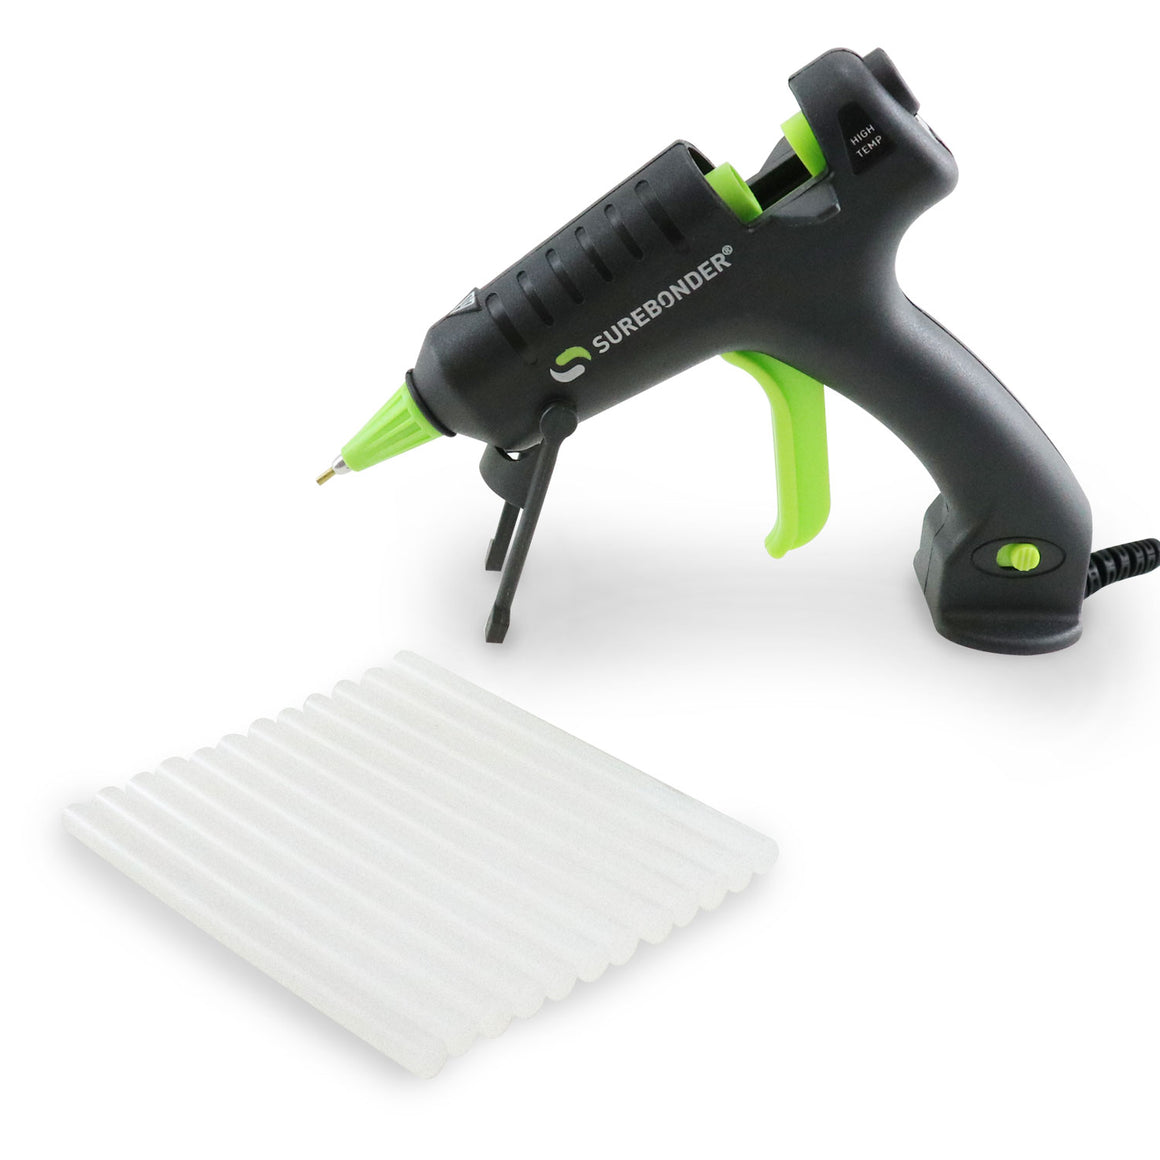 Surebonder H-195FBS-KIT 20 Watt Mini Size High Temperature Detail Hot Glue Gun with 12 Sticks Included